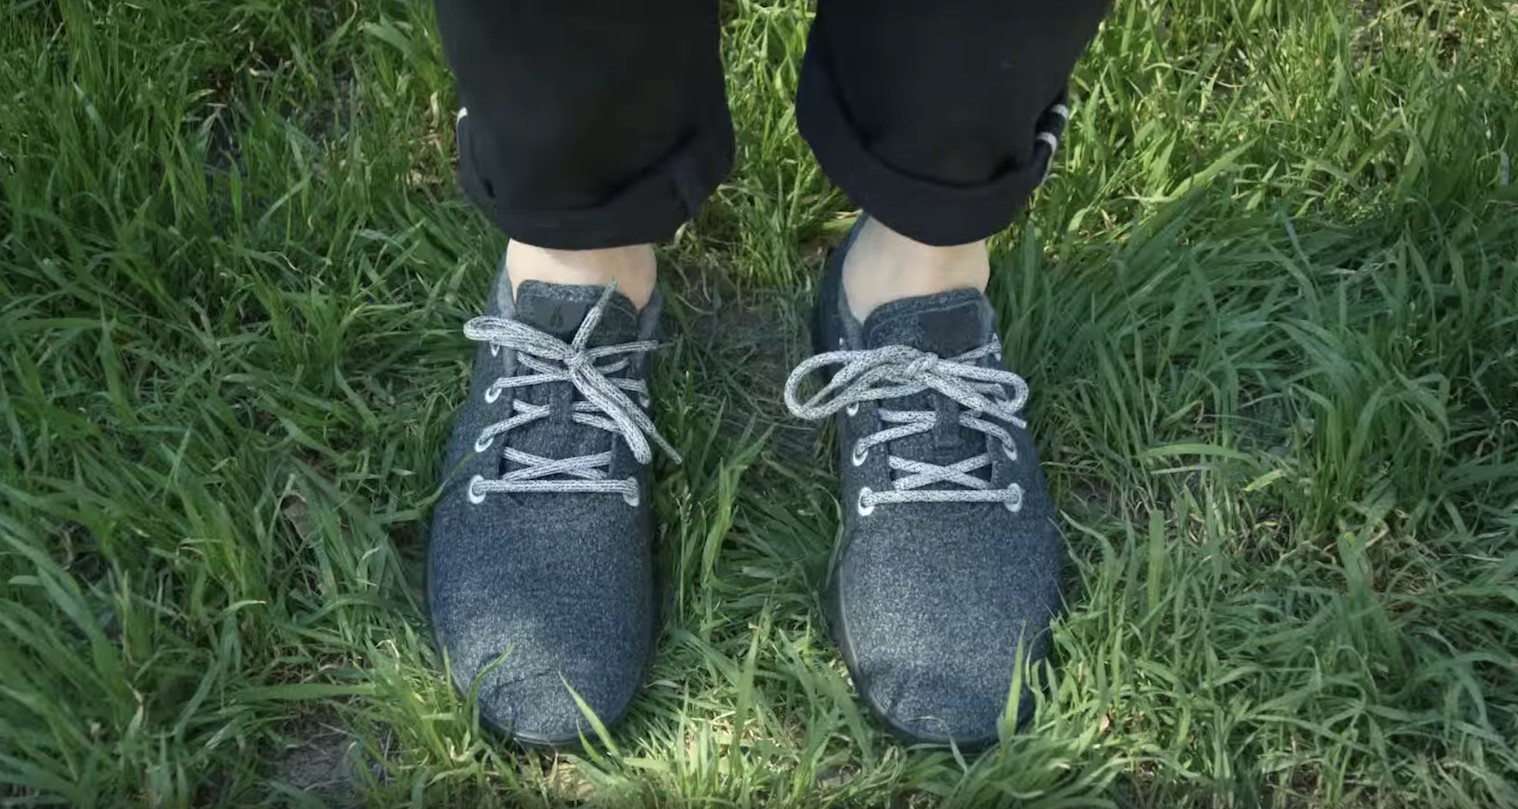 After months of speculation, Allbirds is officially filing for an IPO.